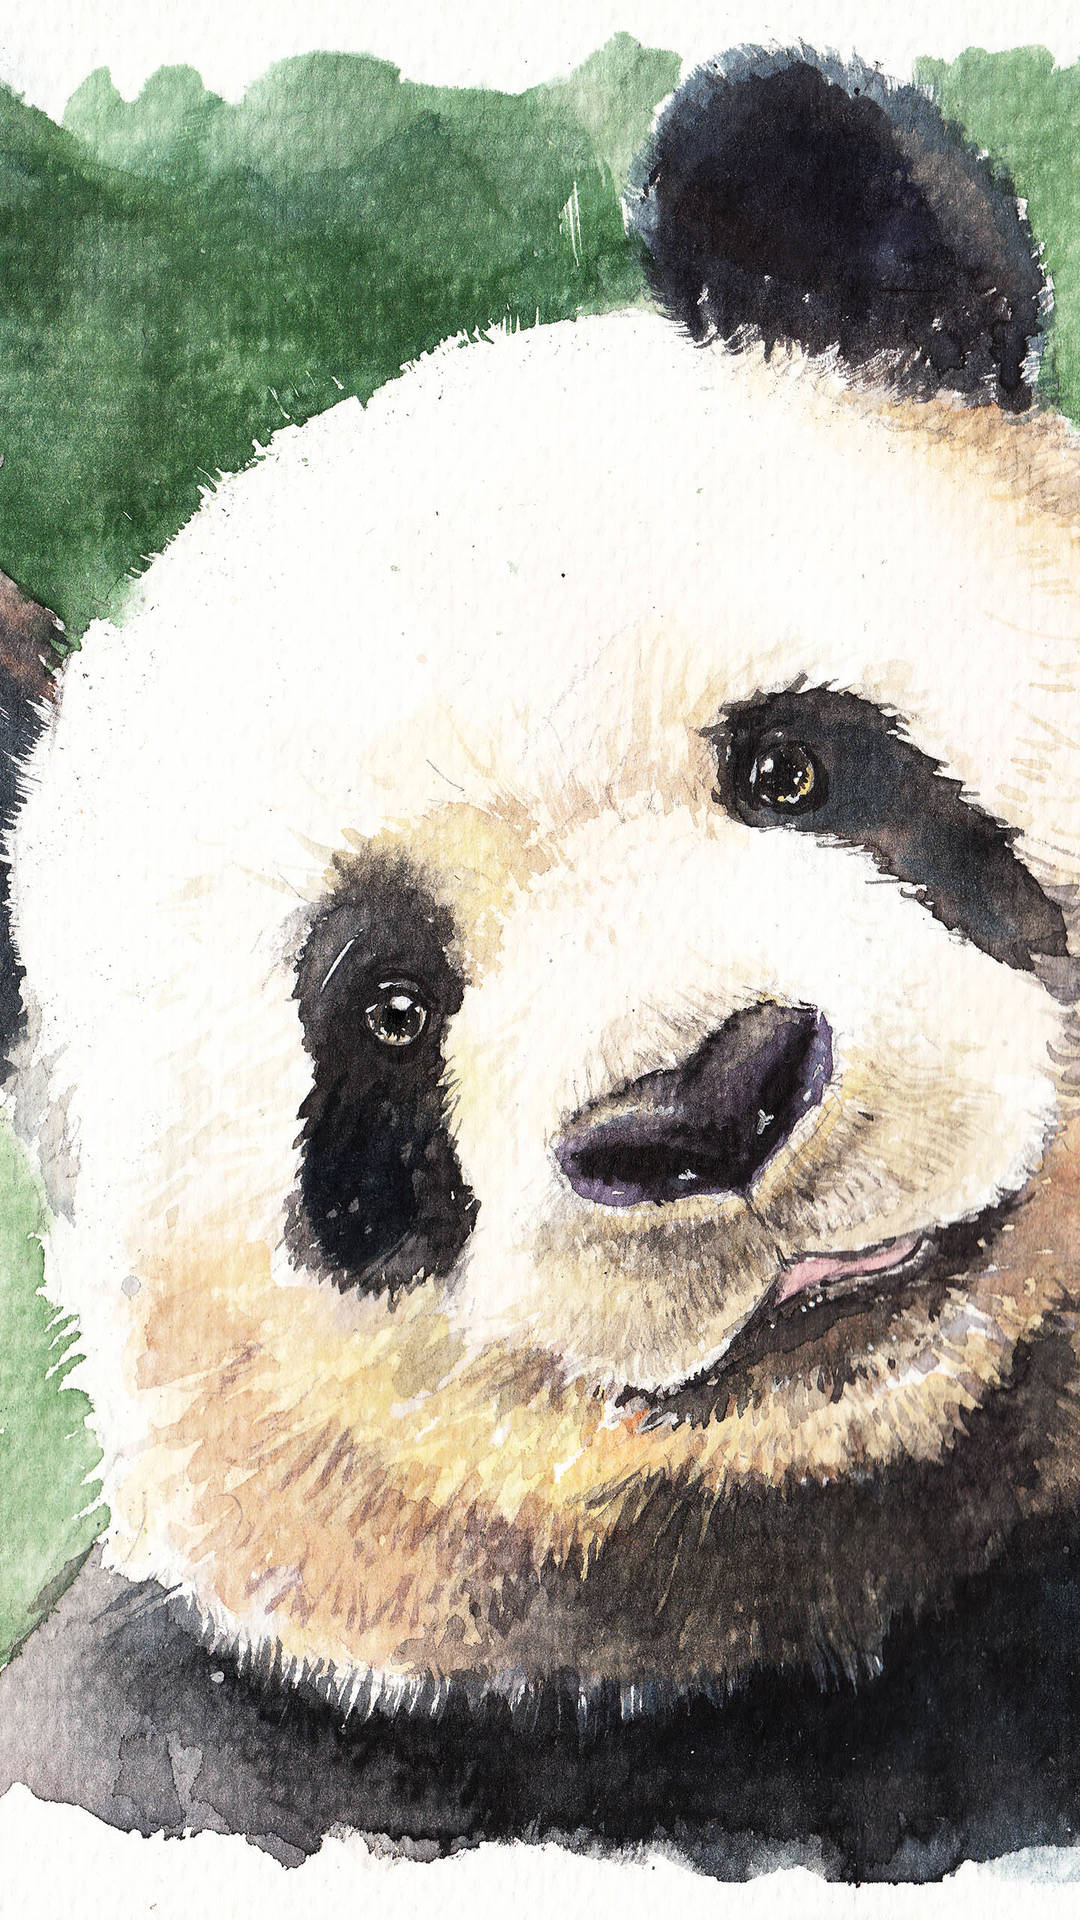 Download Wallpaper Apple Iphone 11 Cute Panda Wallpapers For Iphone With 1920x1080